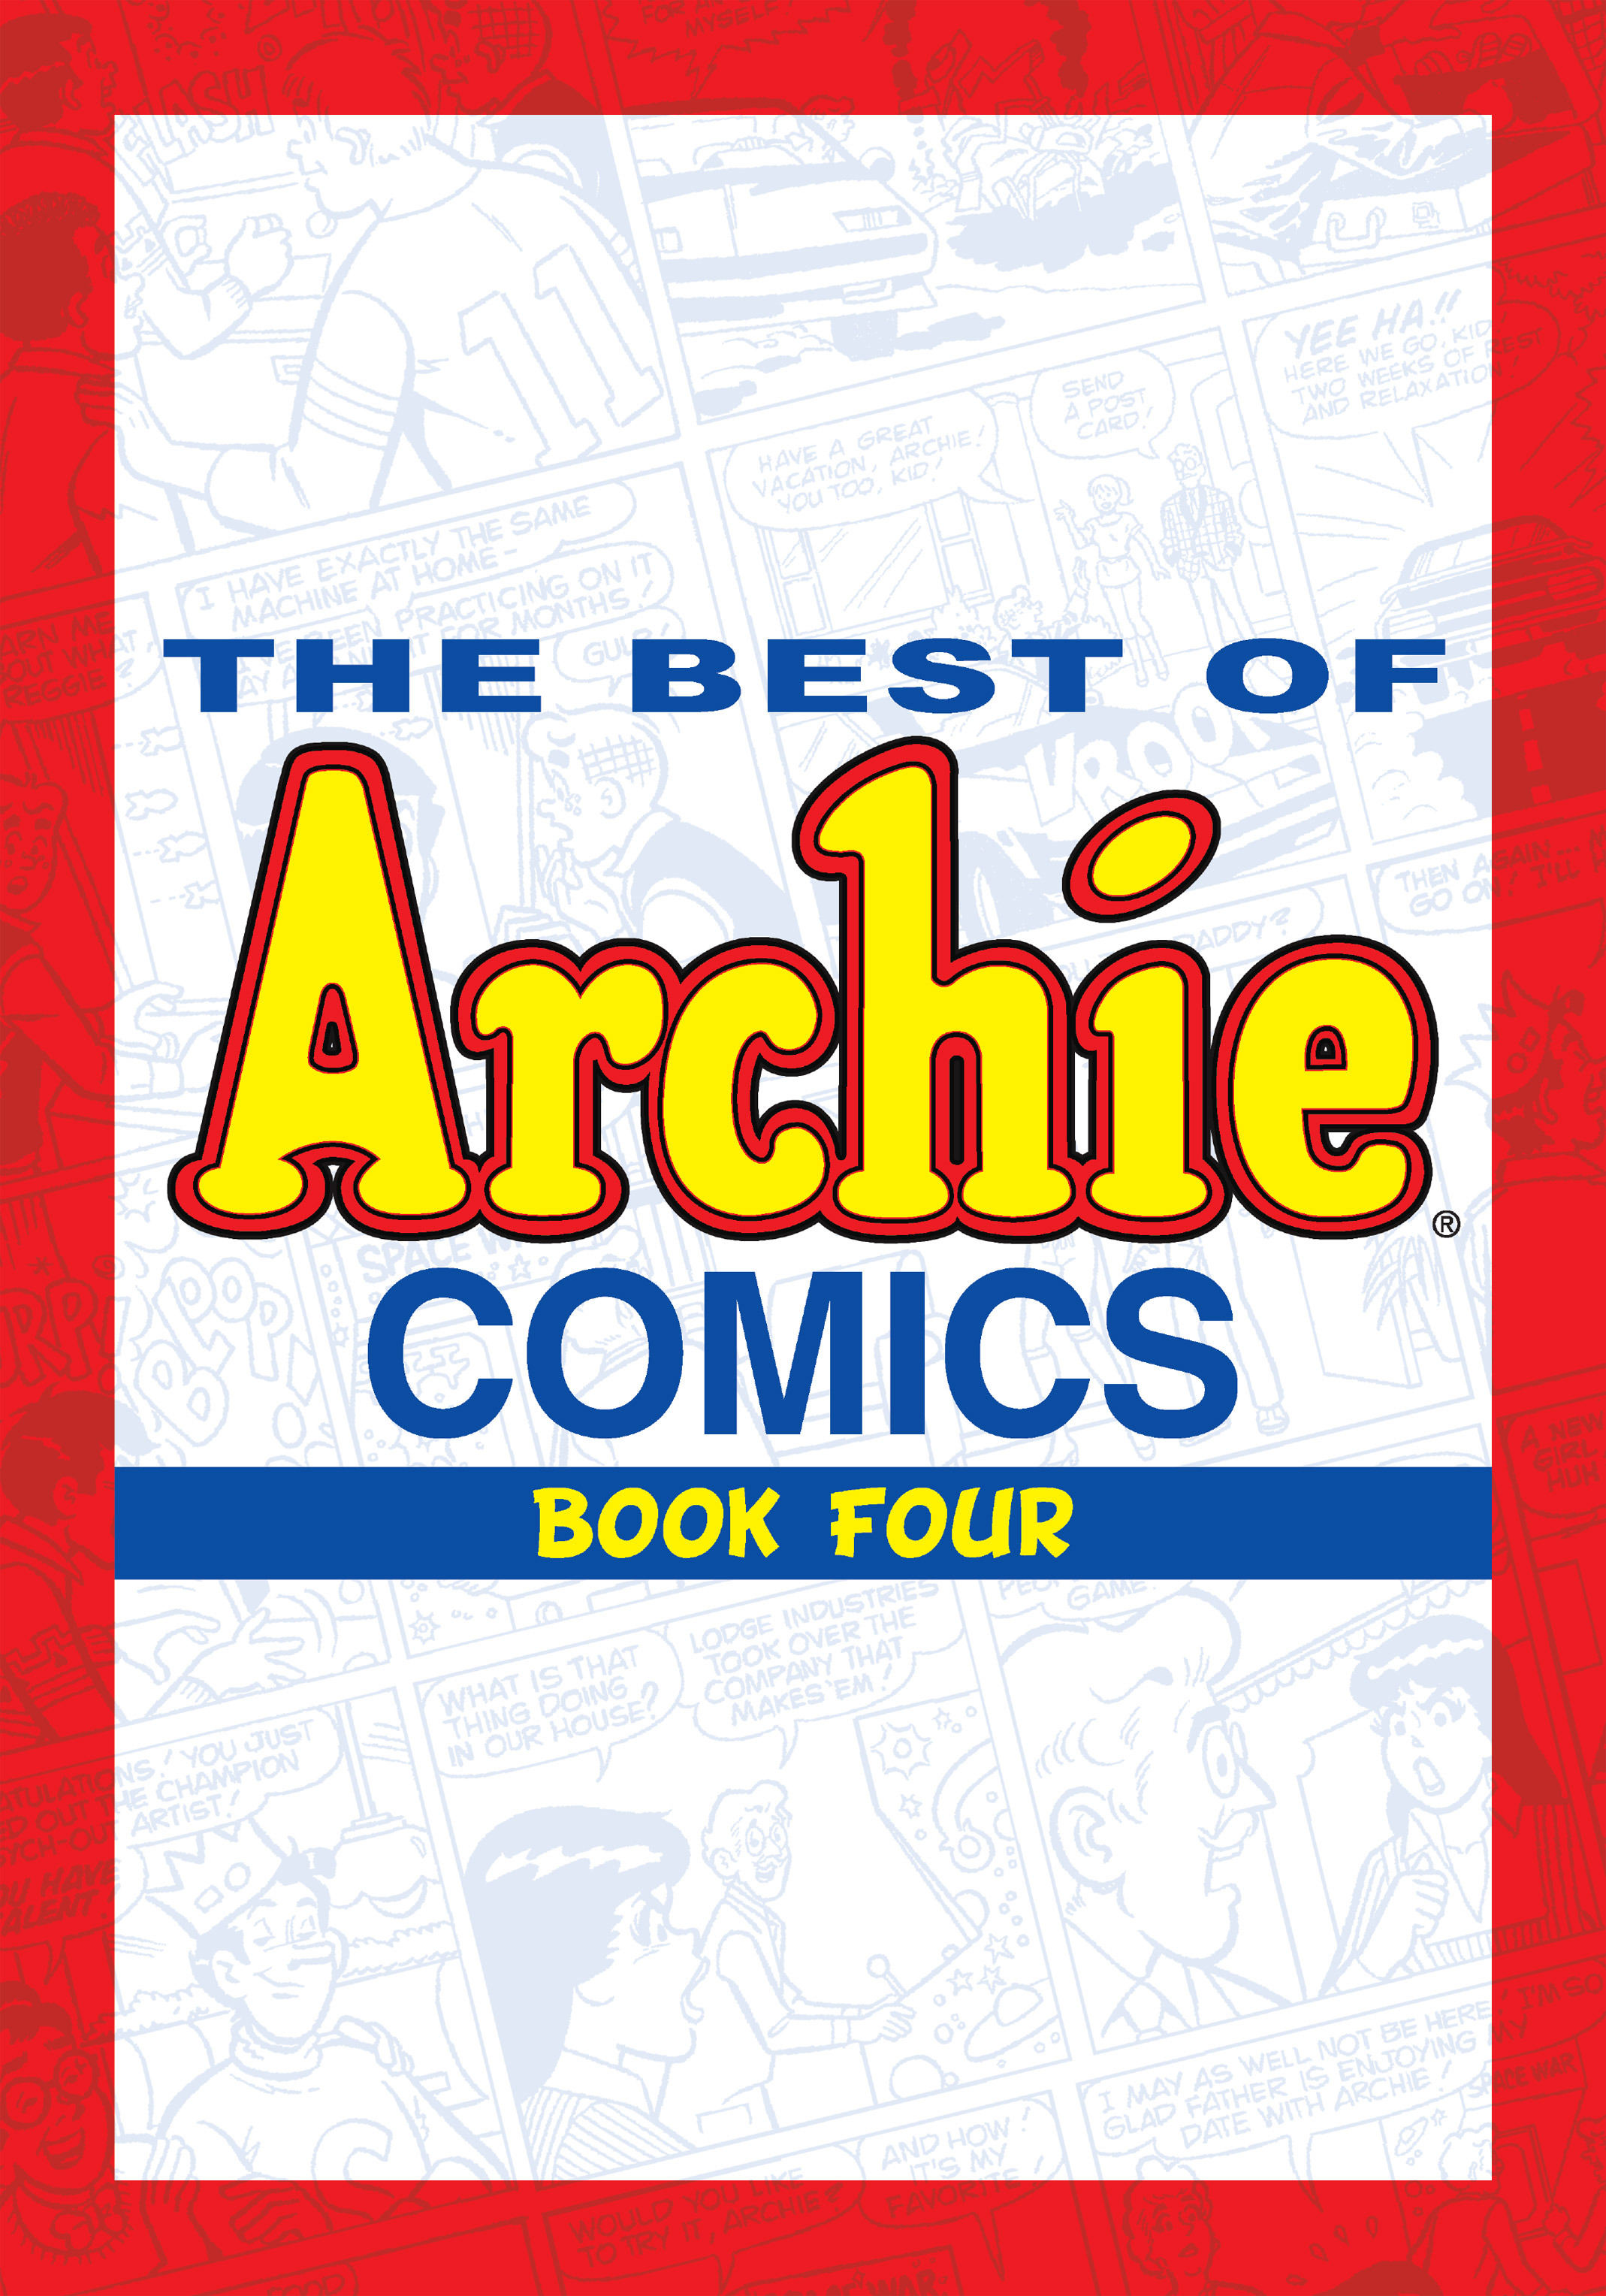 Read online The Best of Archie Comics comic -  Issue # TPB 4 (Part 1) - 2